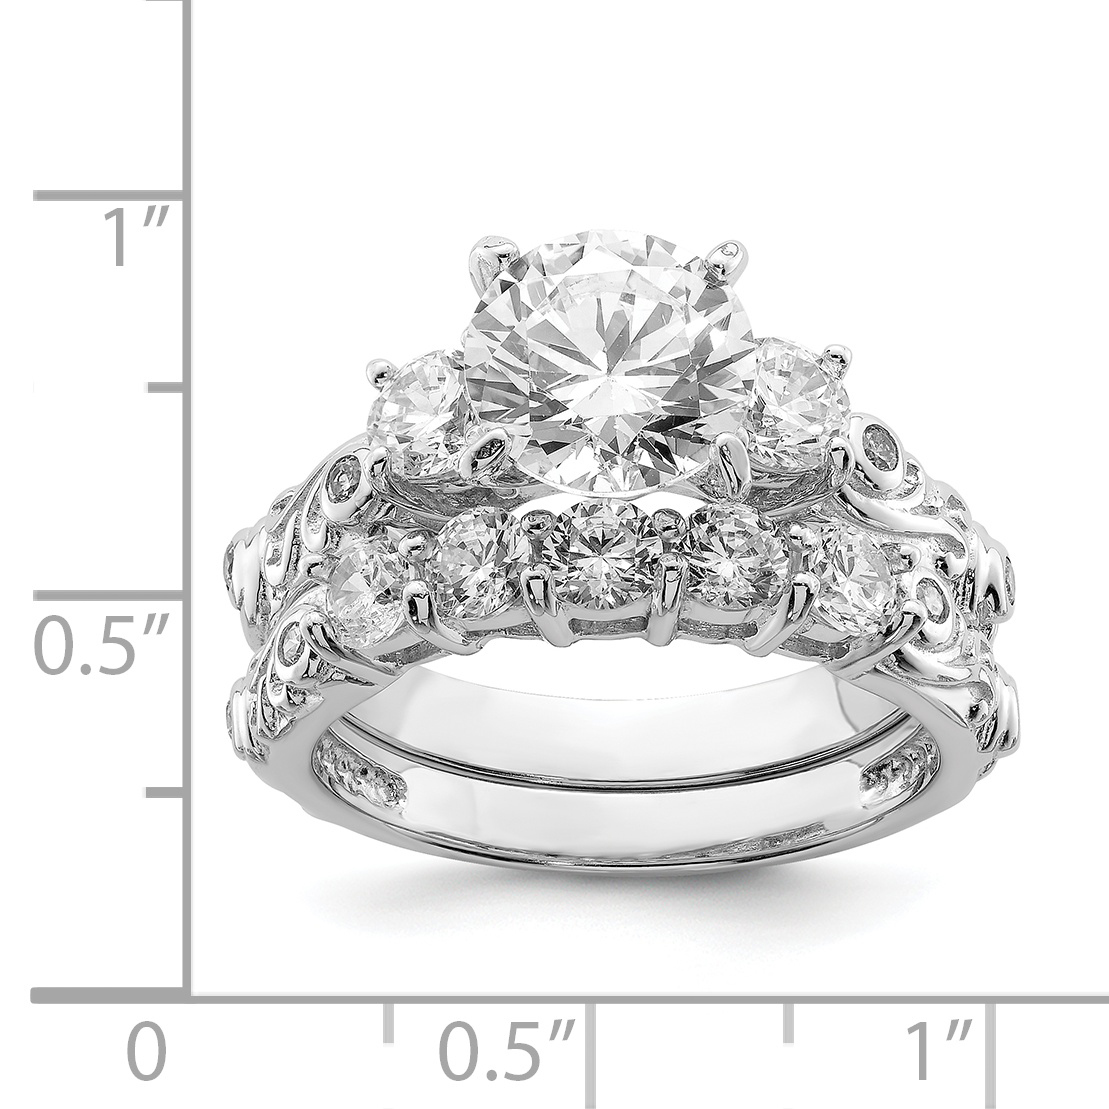 925 Sterling Silver Rhodium-plated 2-piece Cubic Zirconia Wedding Ring - image 1 of 2